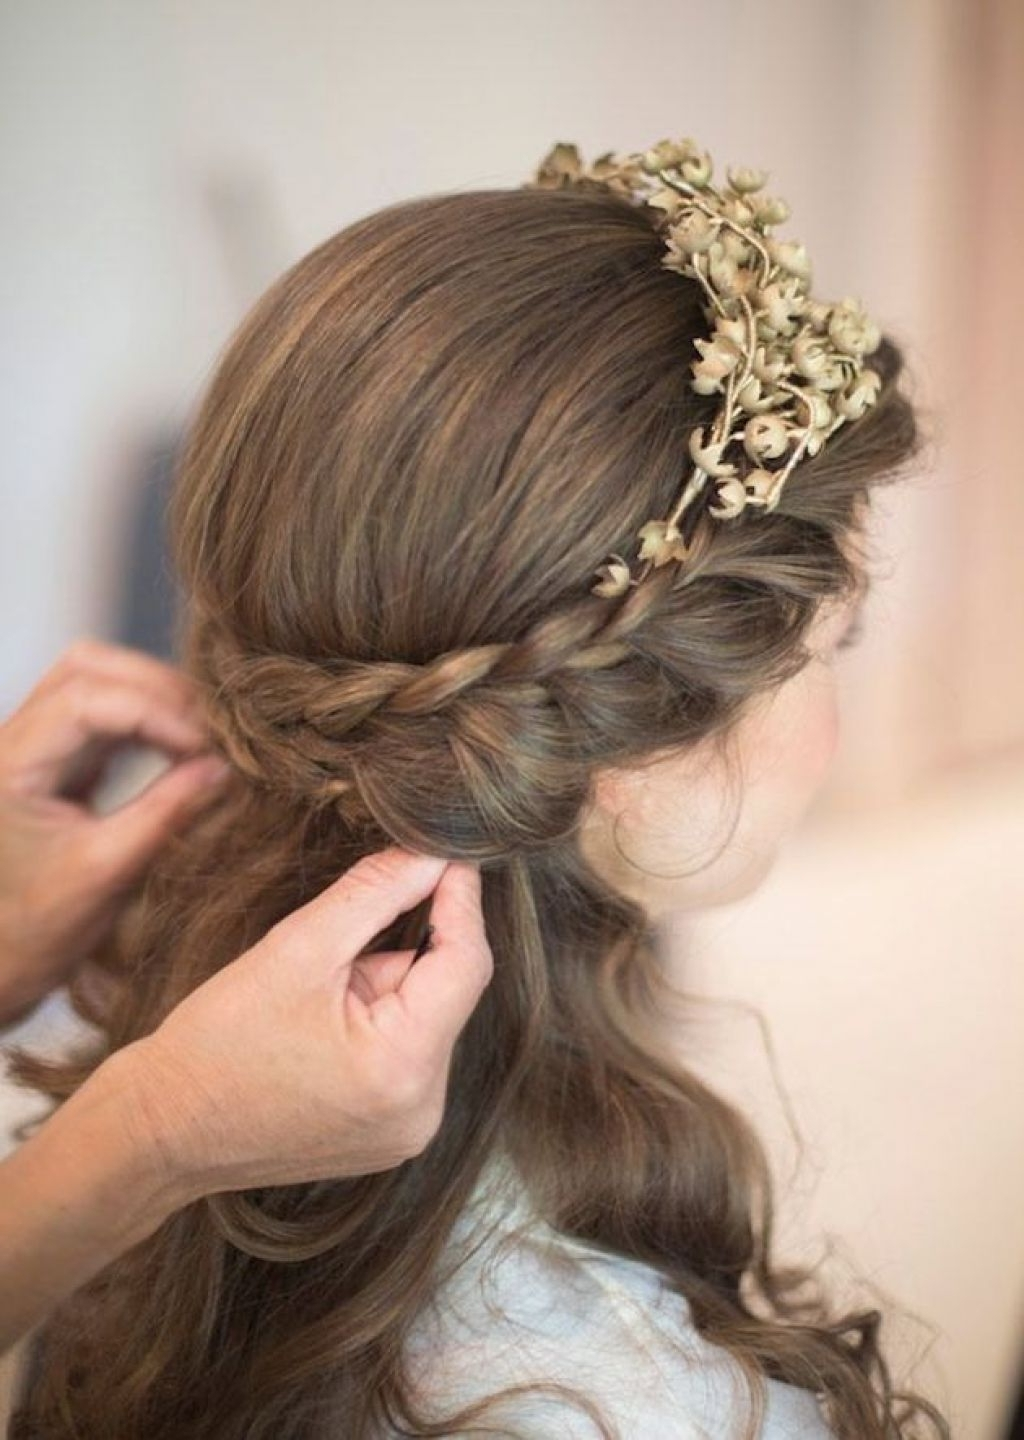 Medium Hair Half Up Half Down Wedding Hairstyles For Medium Length Inside Well Known Half Up Half Down Wedding Hairstyles For Medium Length Hair (View 6 of 15)